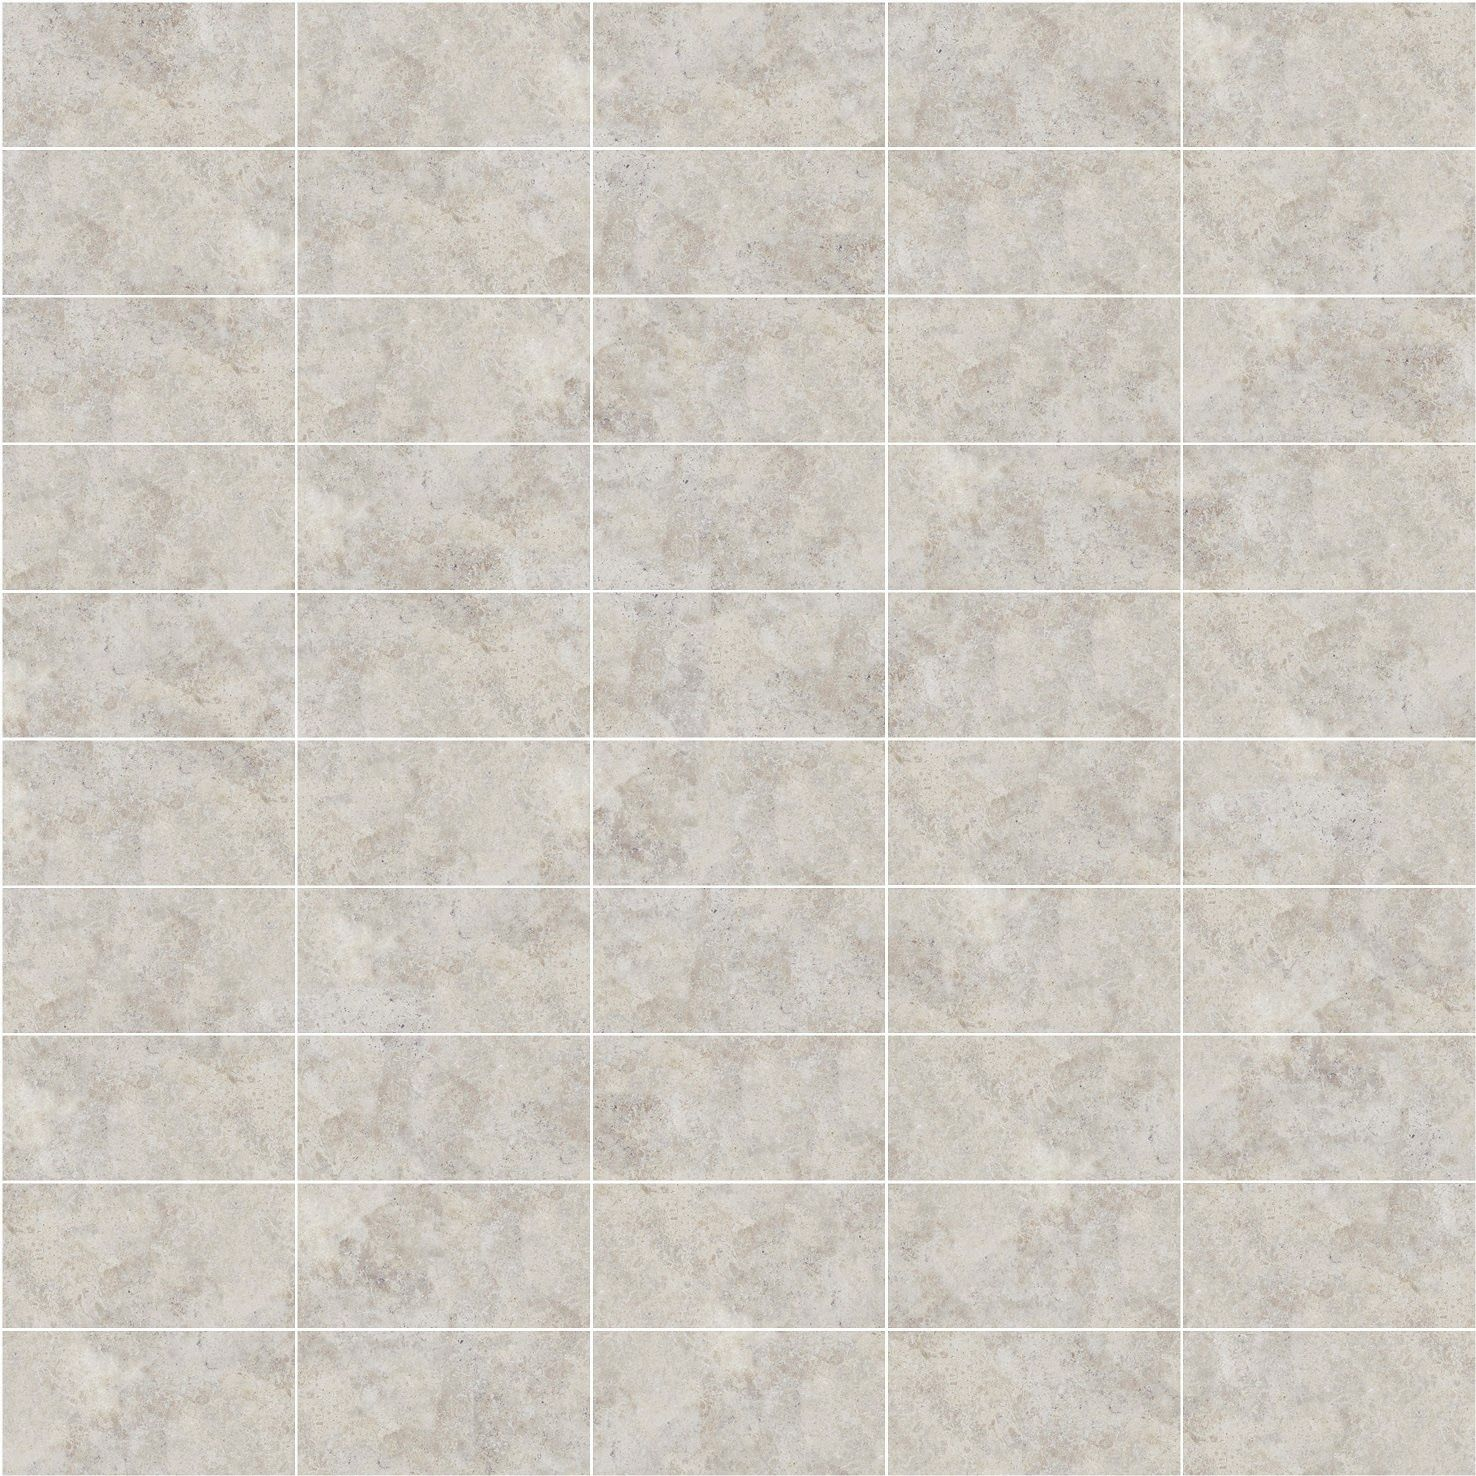 Texture seamless marble floor tile textures pinterest marble floor marbles and marble tiles Wood pattern tile